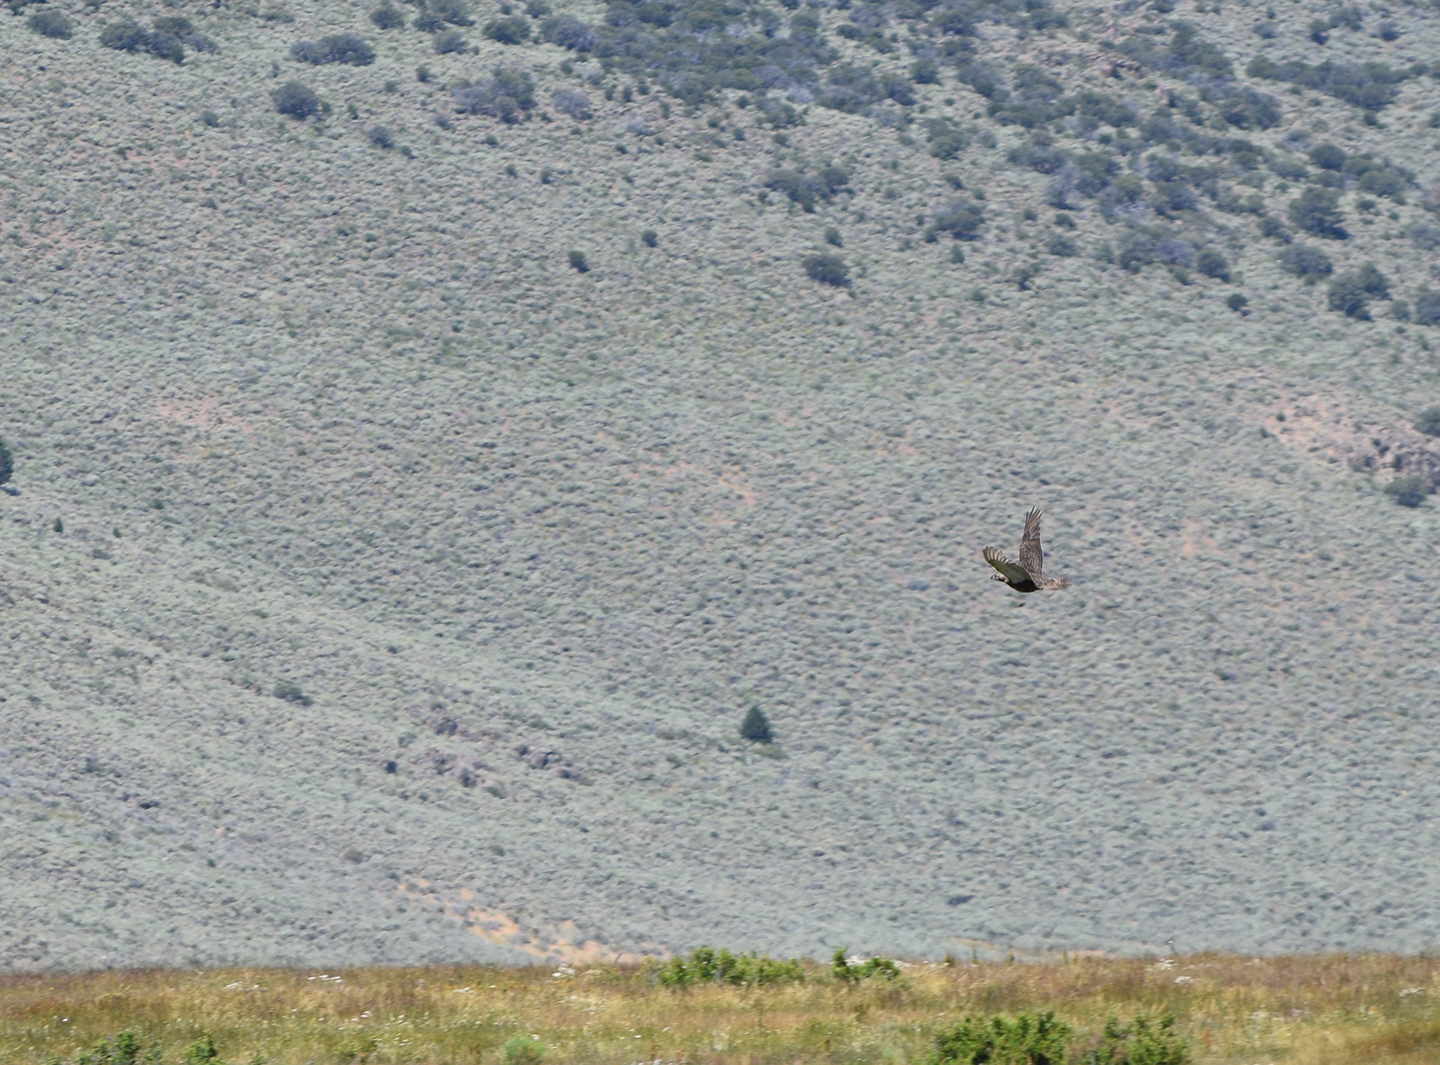 A sage-grouse takes flight at Sceirine Point Ranch